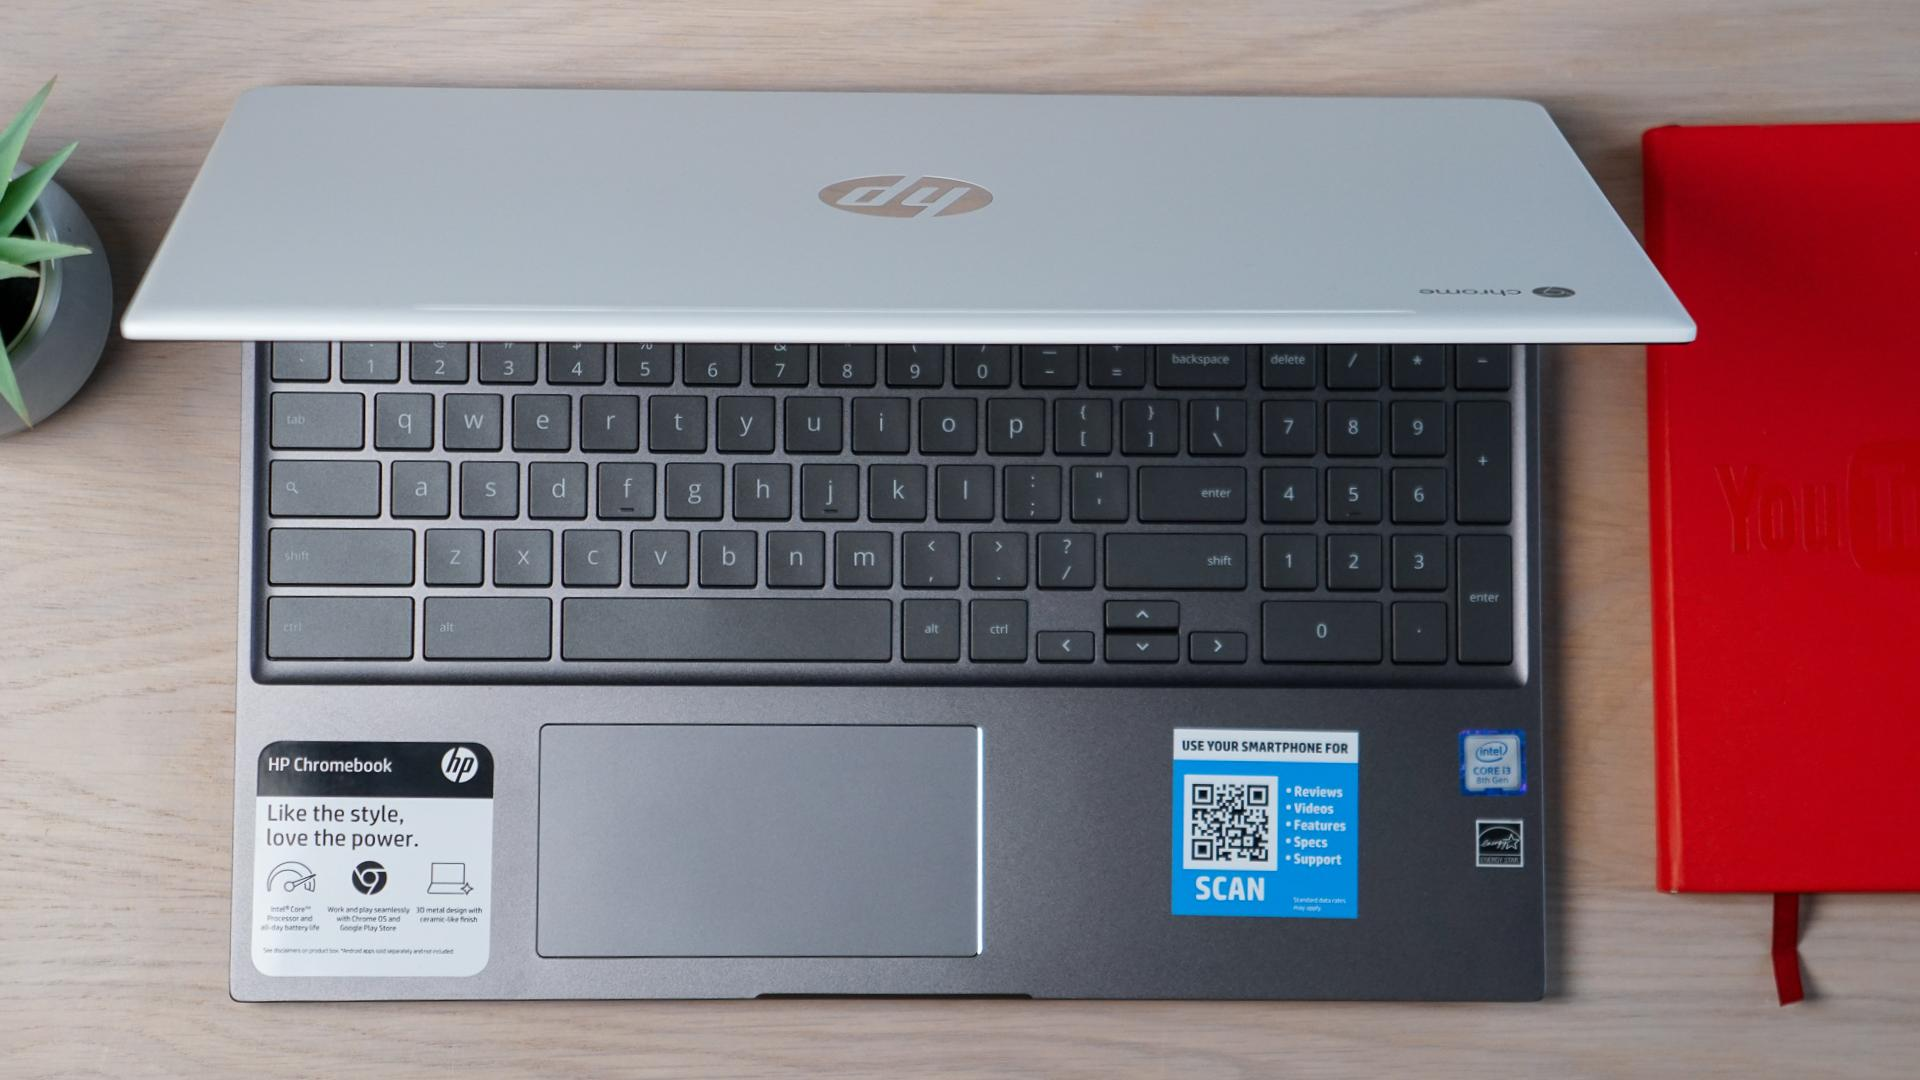 Powerful new 15-inch HP Chromebook shows up at Best Buy